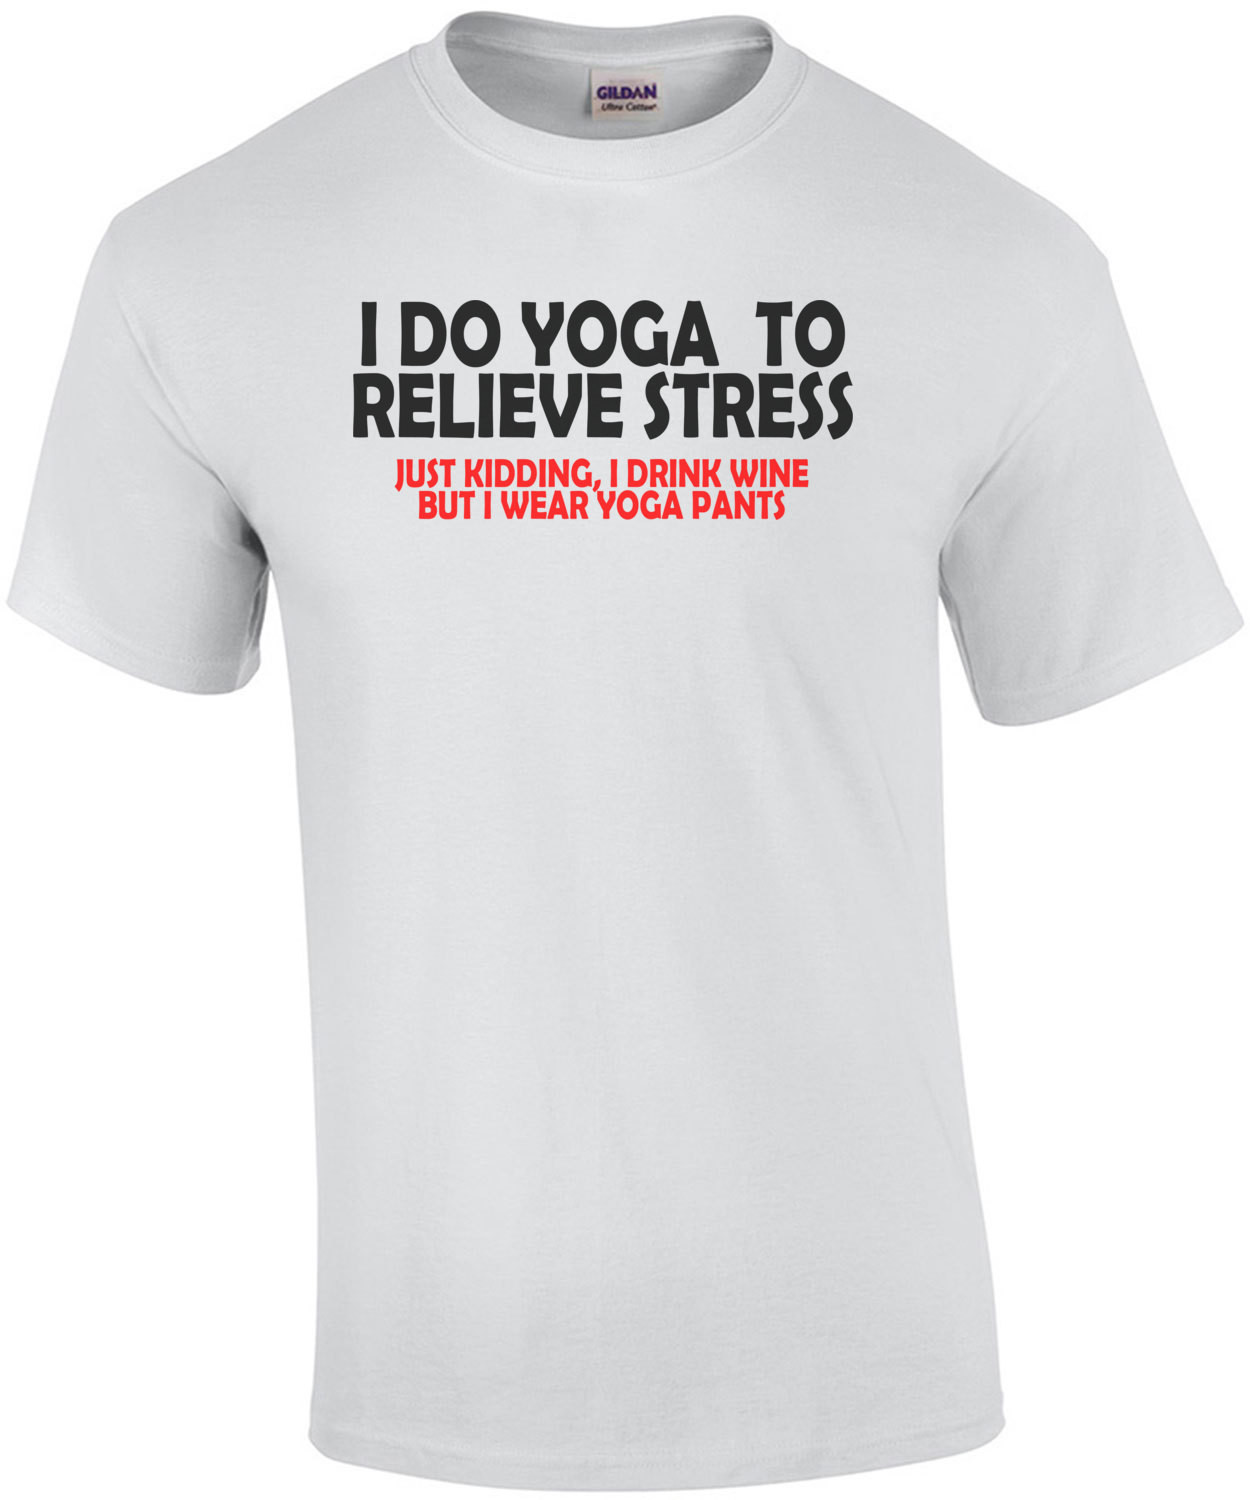 I Do Yoga To Relieve Stress Just Kidding I Drink Wine But I Wear Yoga Pants T-Shirt